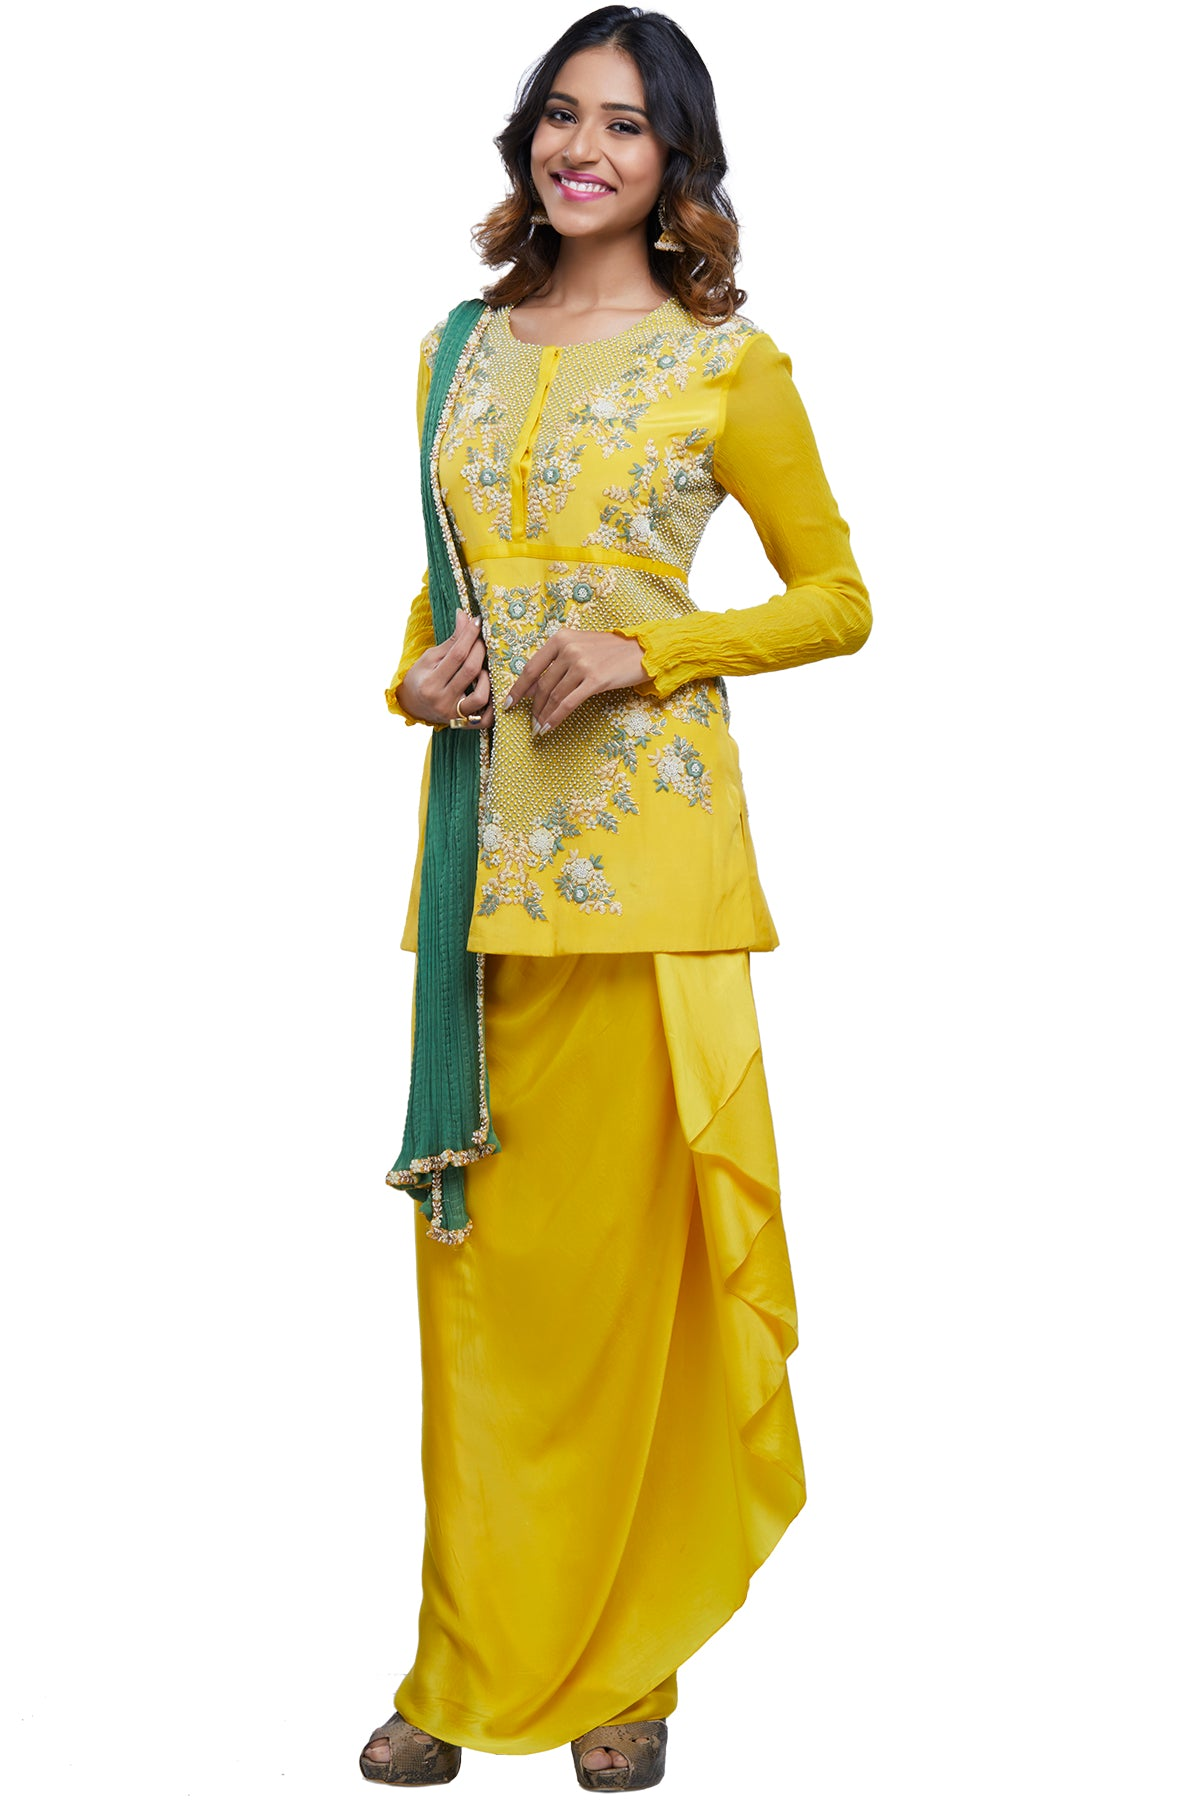 Speaking of sunshine, this raw yellow jhaal and pearl-embroidered short top is paired with a drape wrap skirt and embroidered crinkled georgette dupatta.